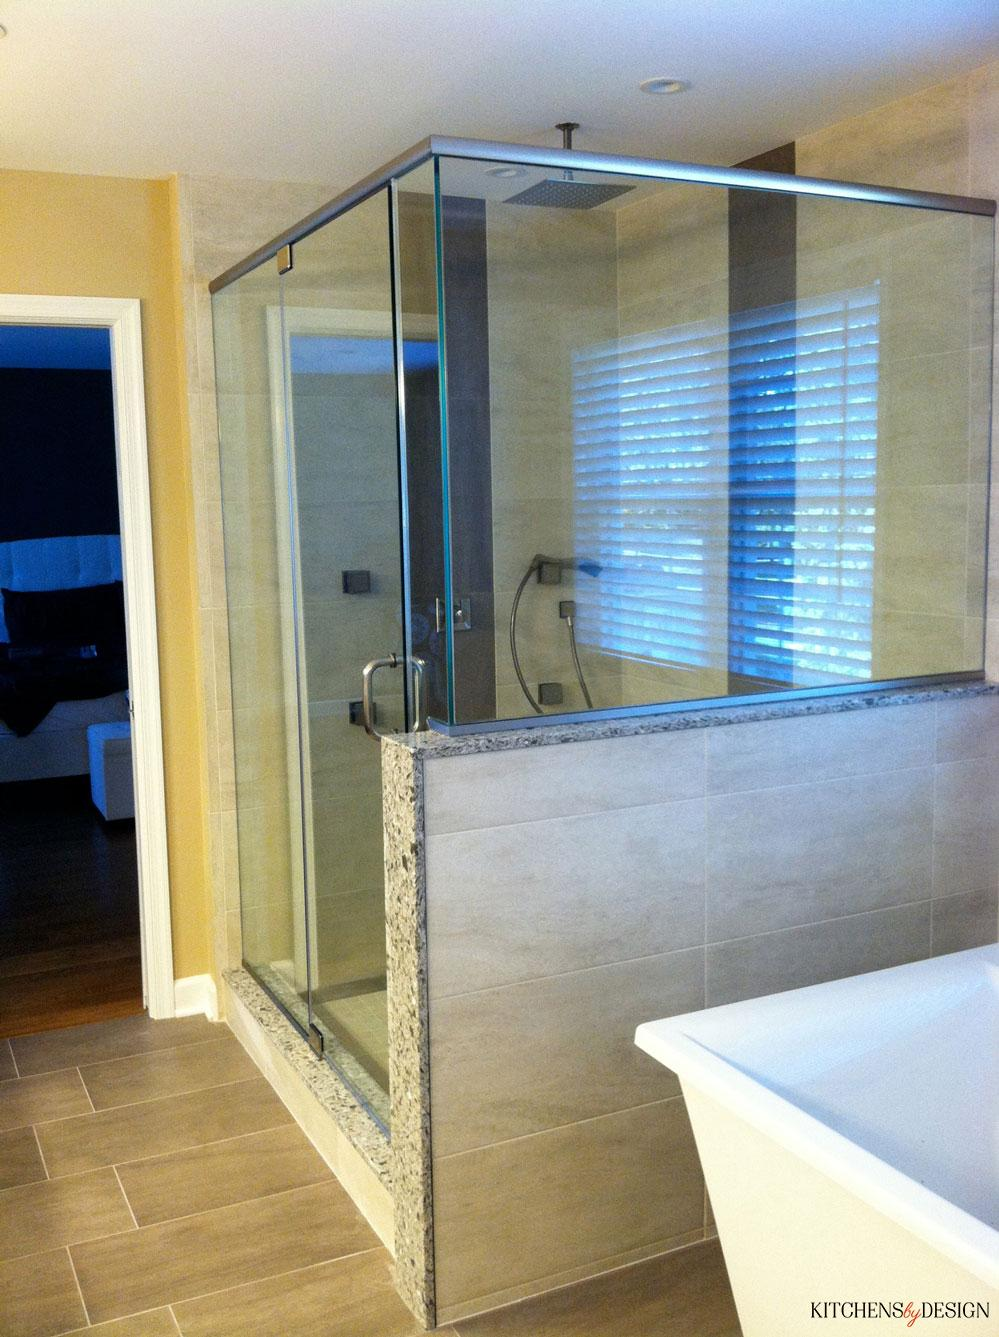 large glass shower with rainfall shower head